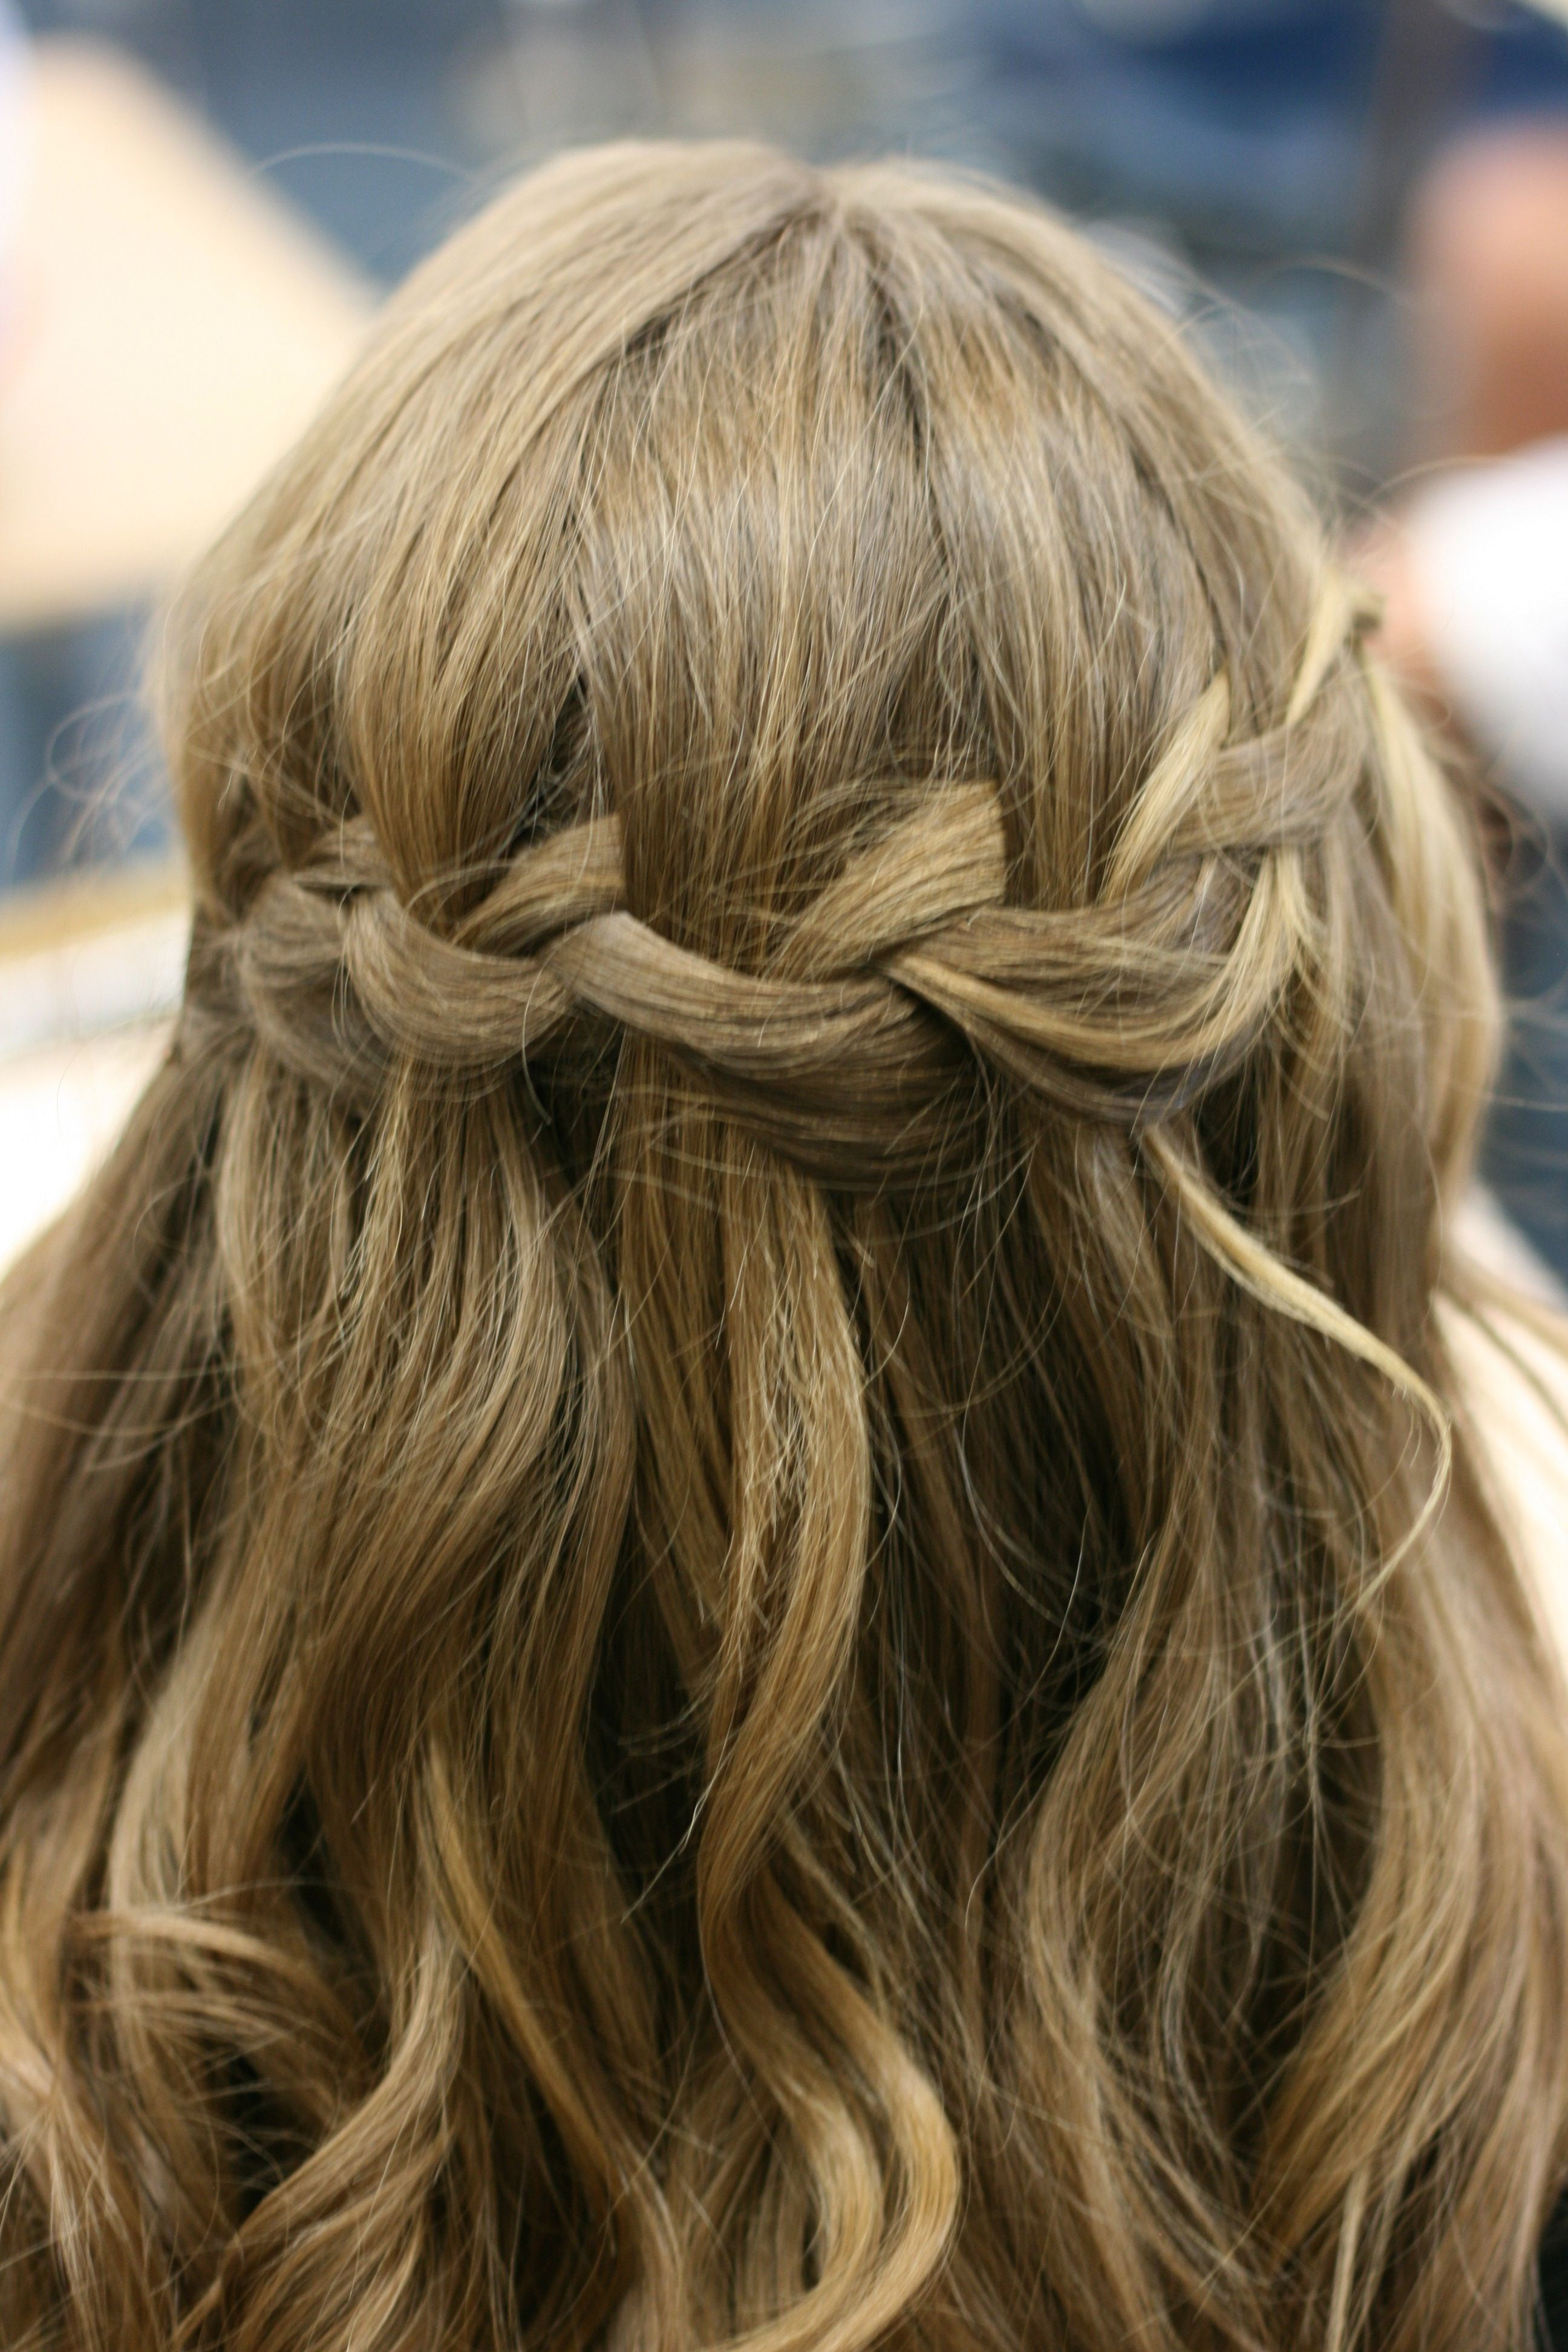 Simple waterfall braid hairs pinterest hair style